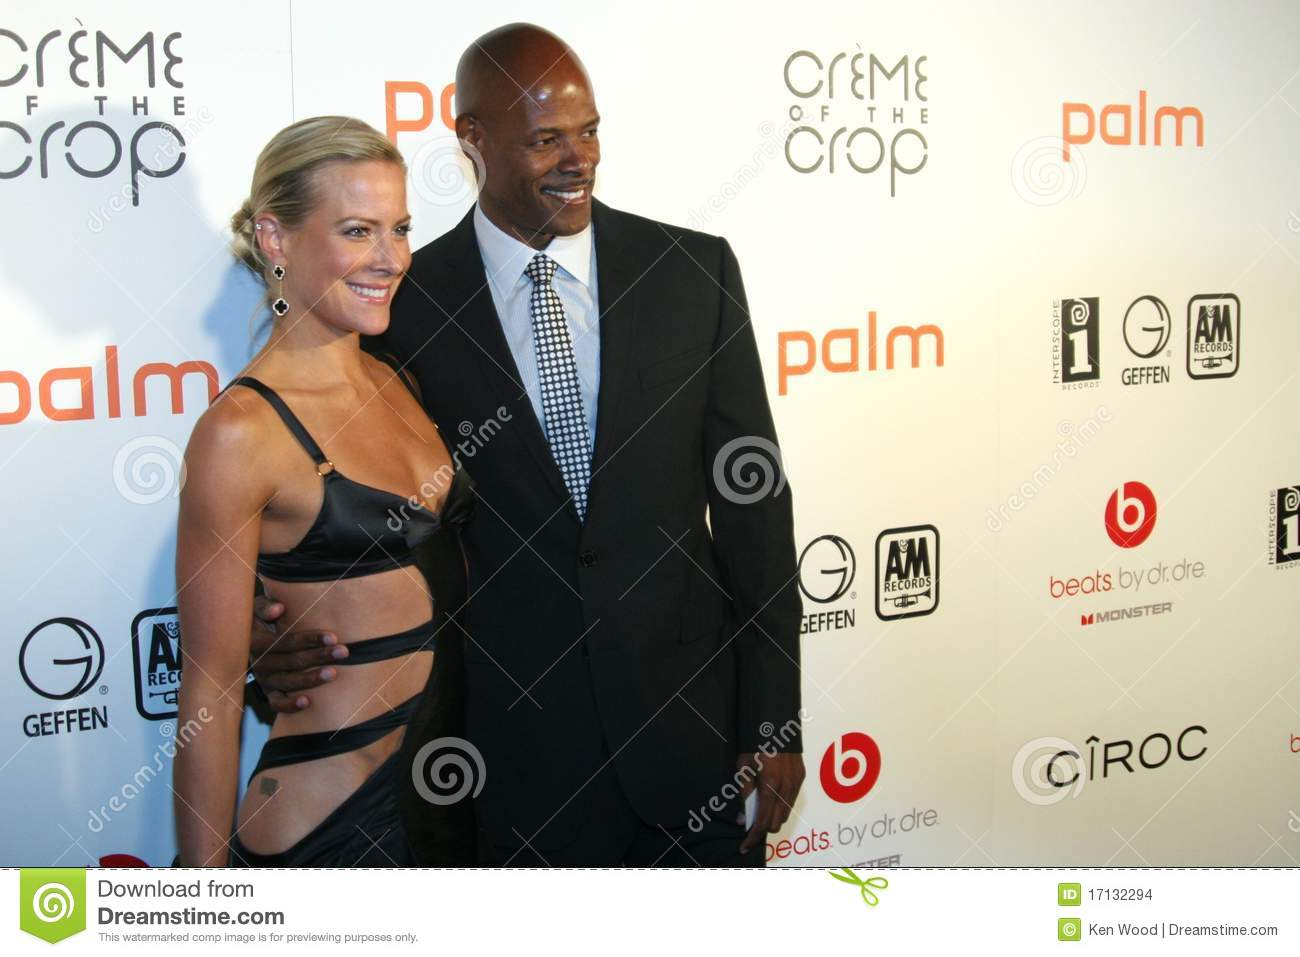 Keenan Ivory Wayans and Brittany Daniel #2